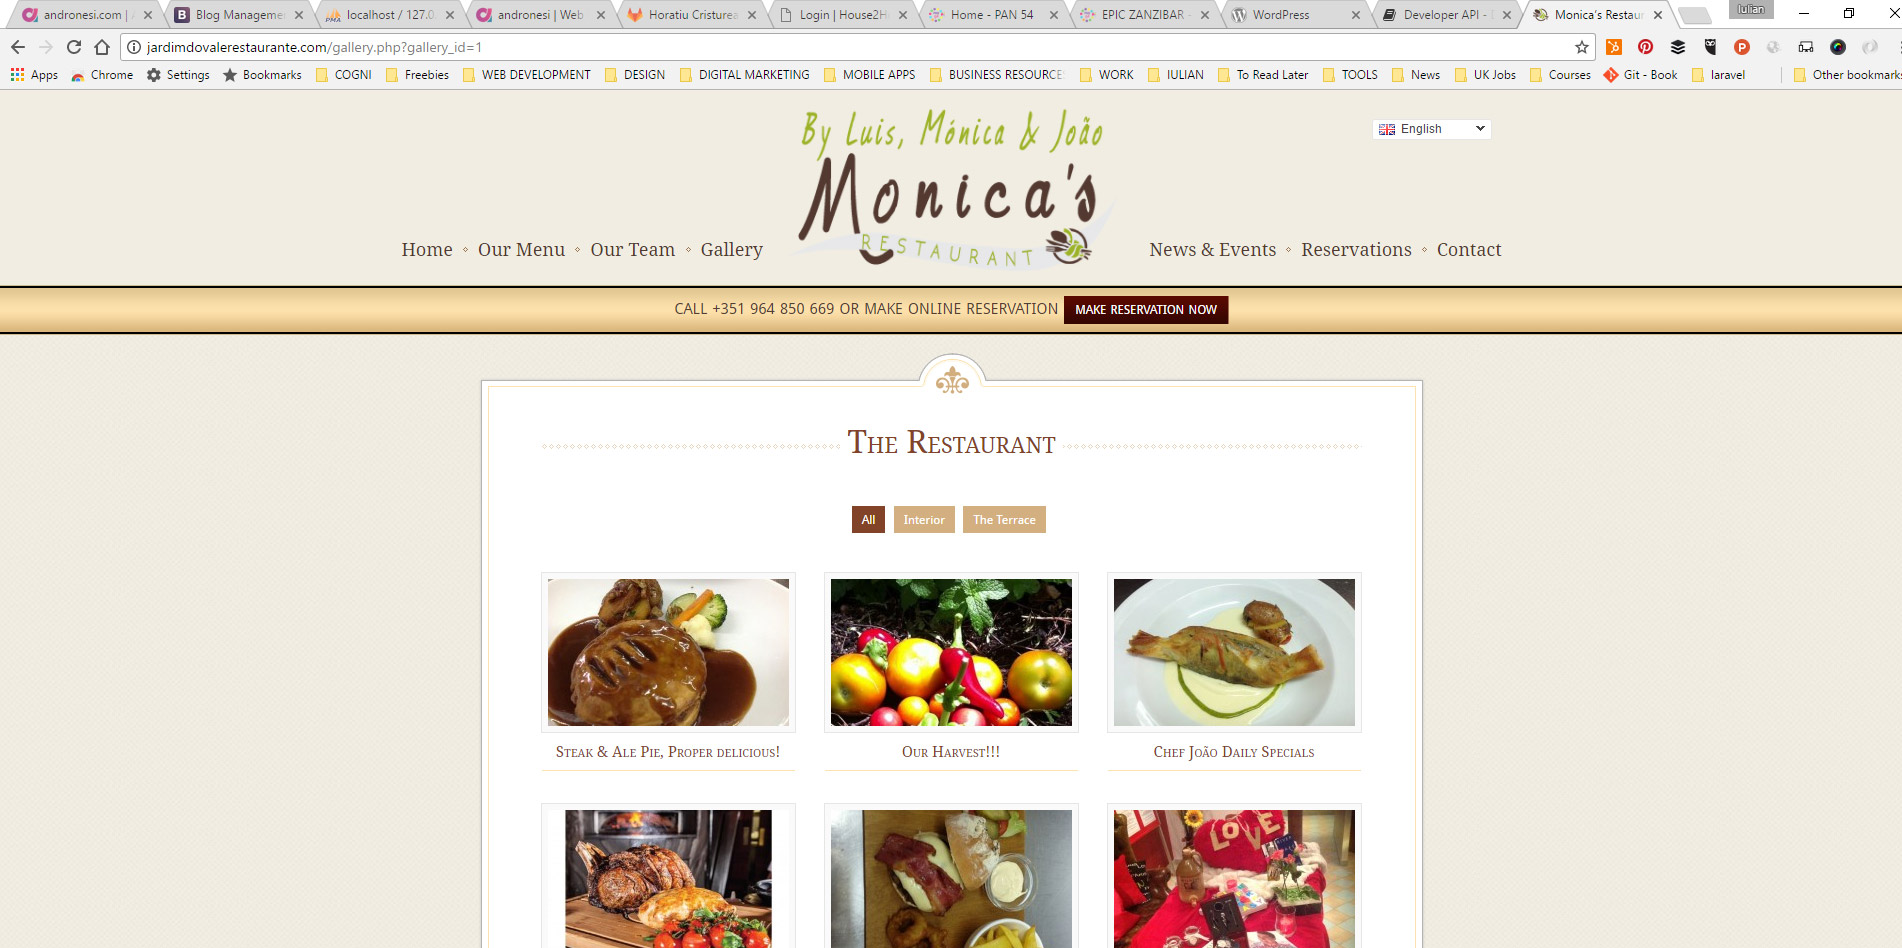 menu page website design for restaurant located in the Algarve